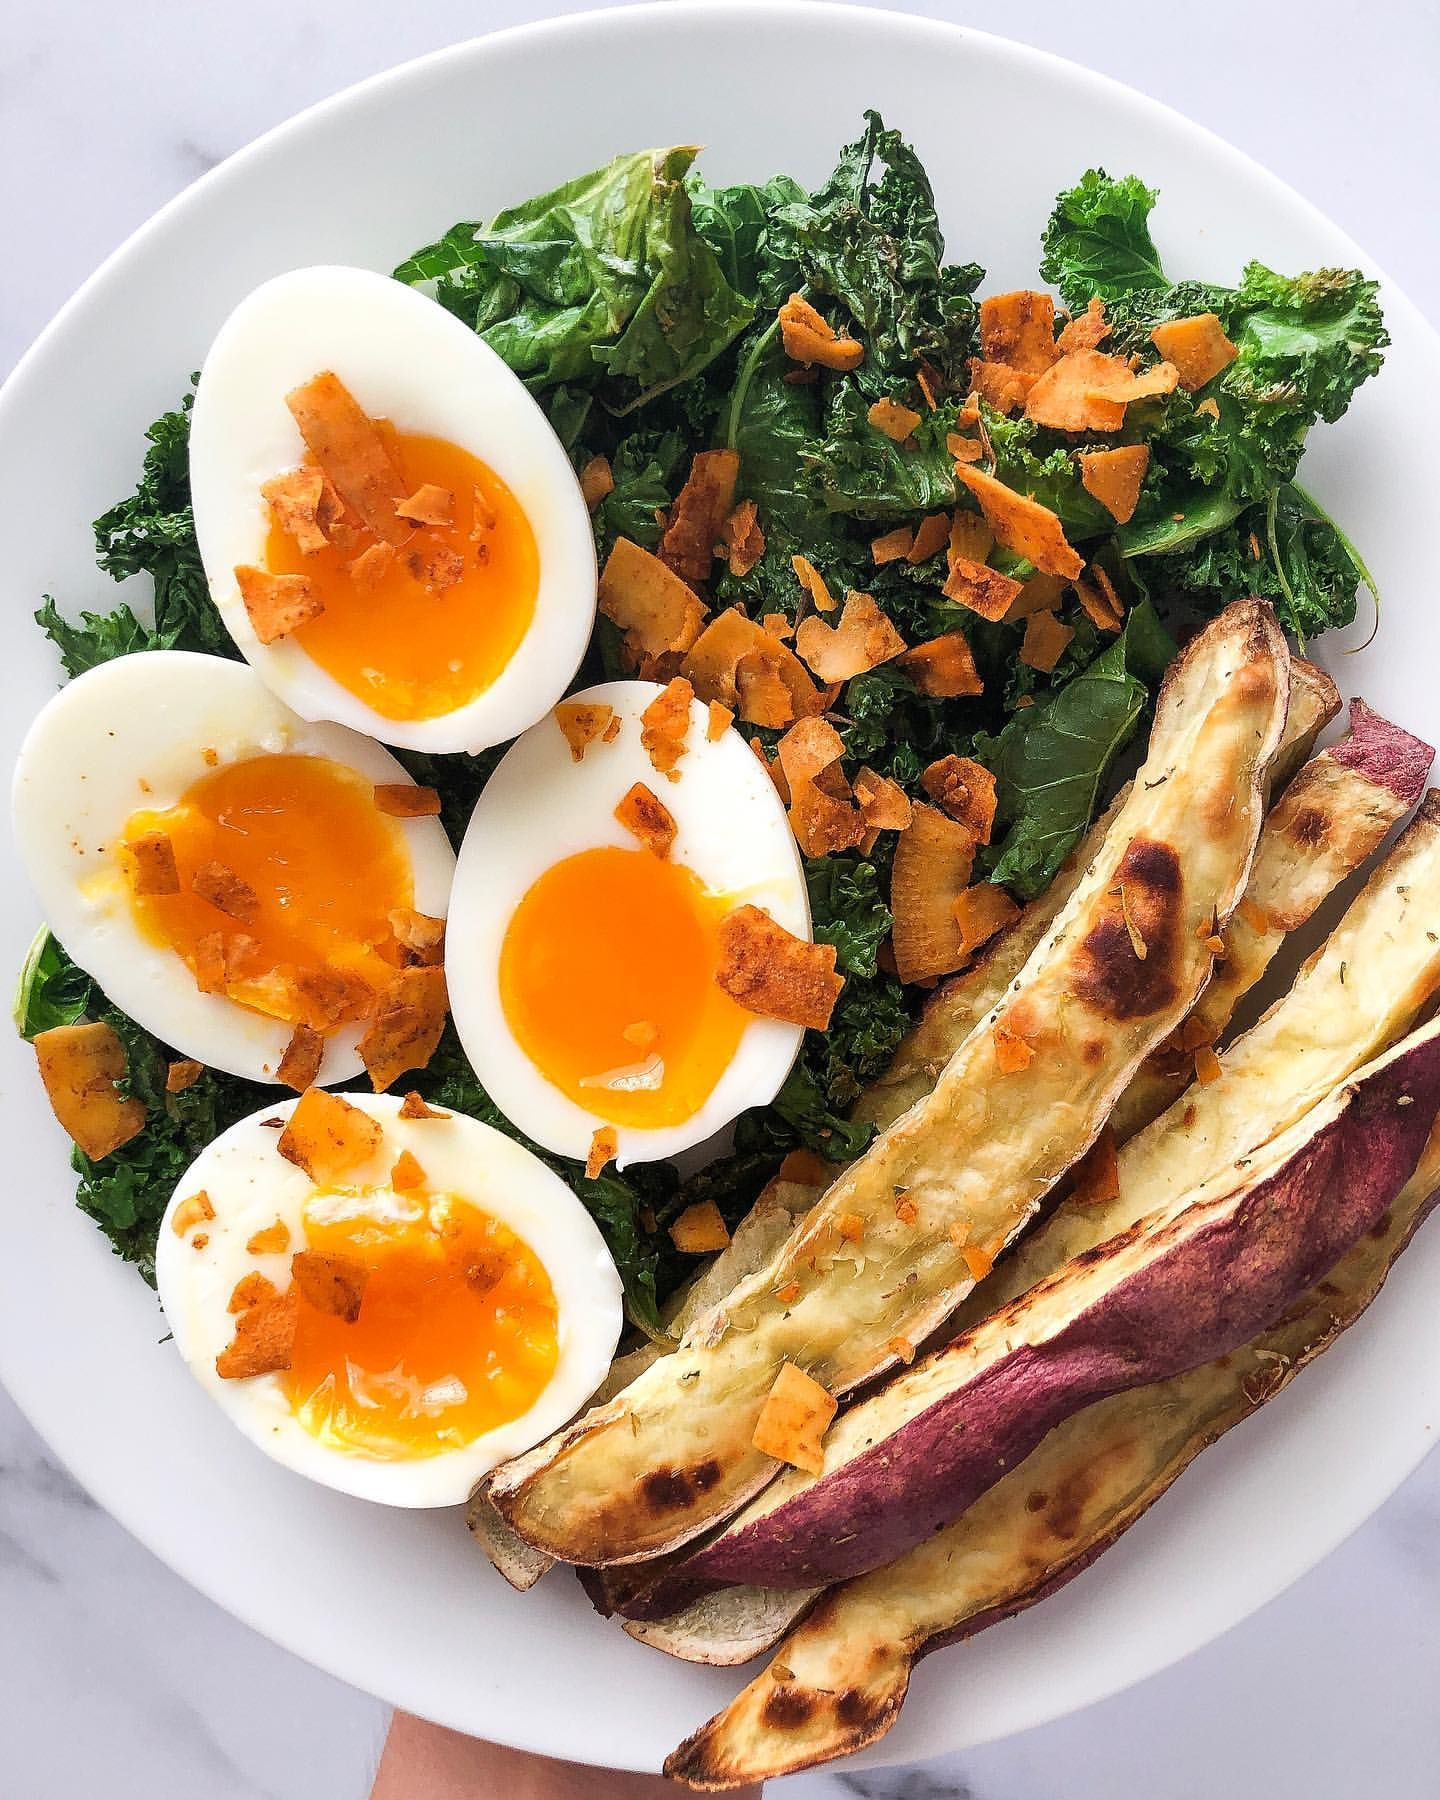 Egg, Potato and Greens Plate